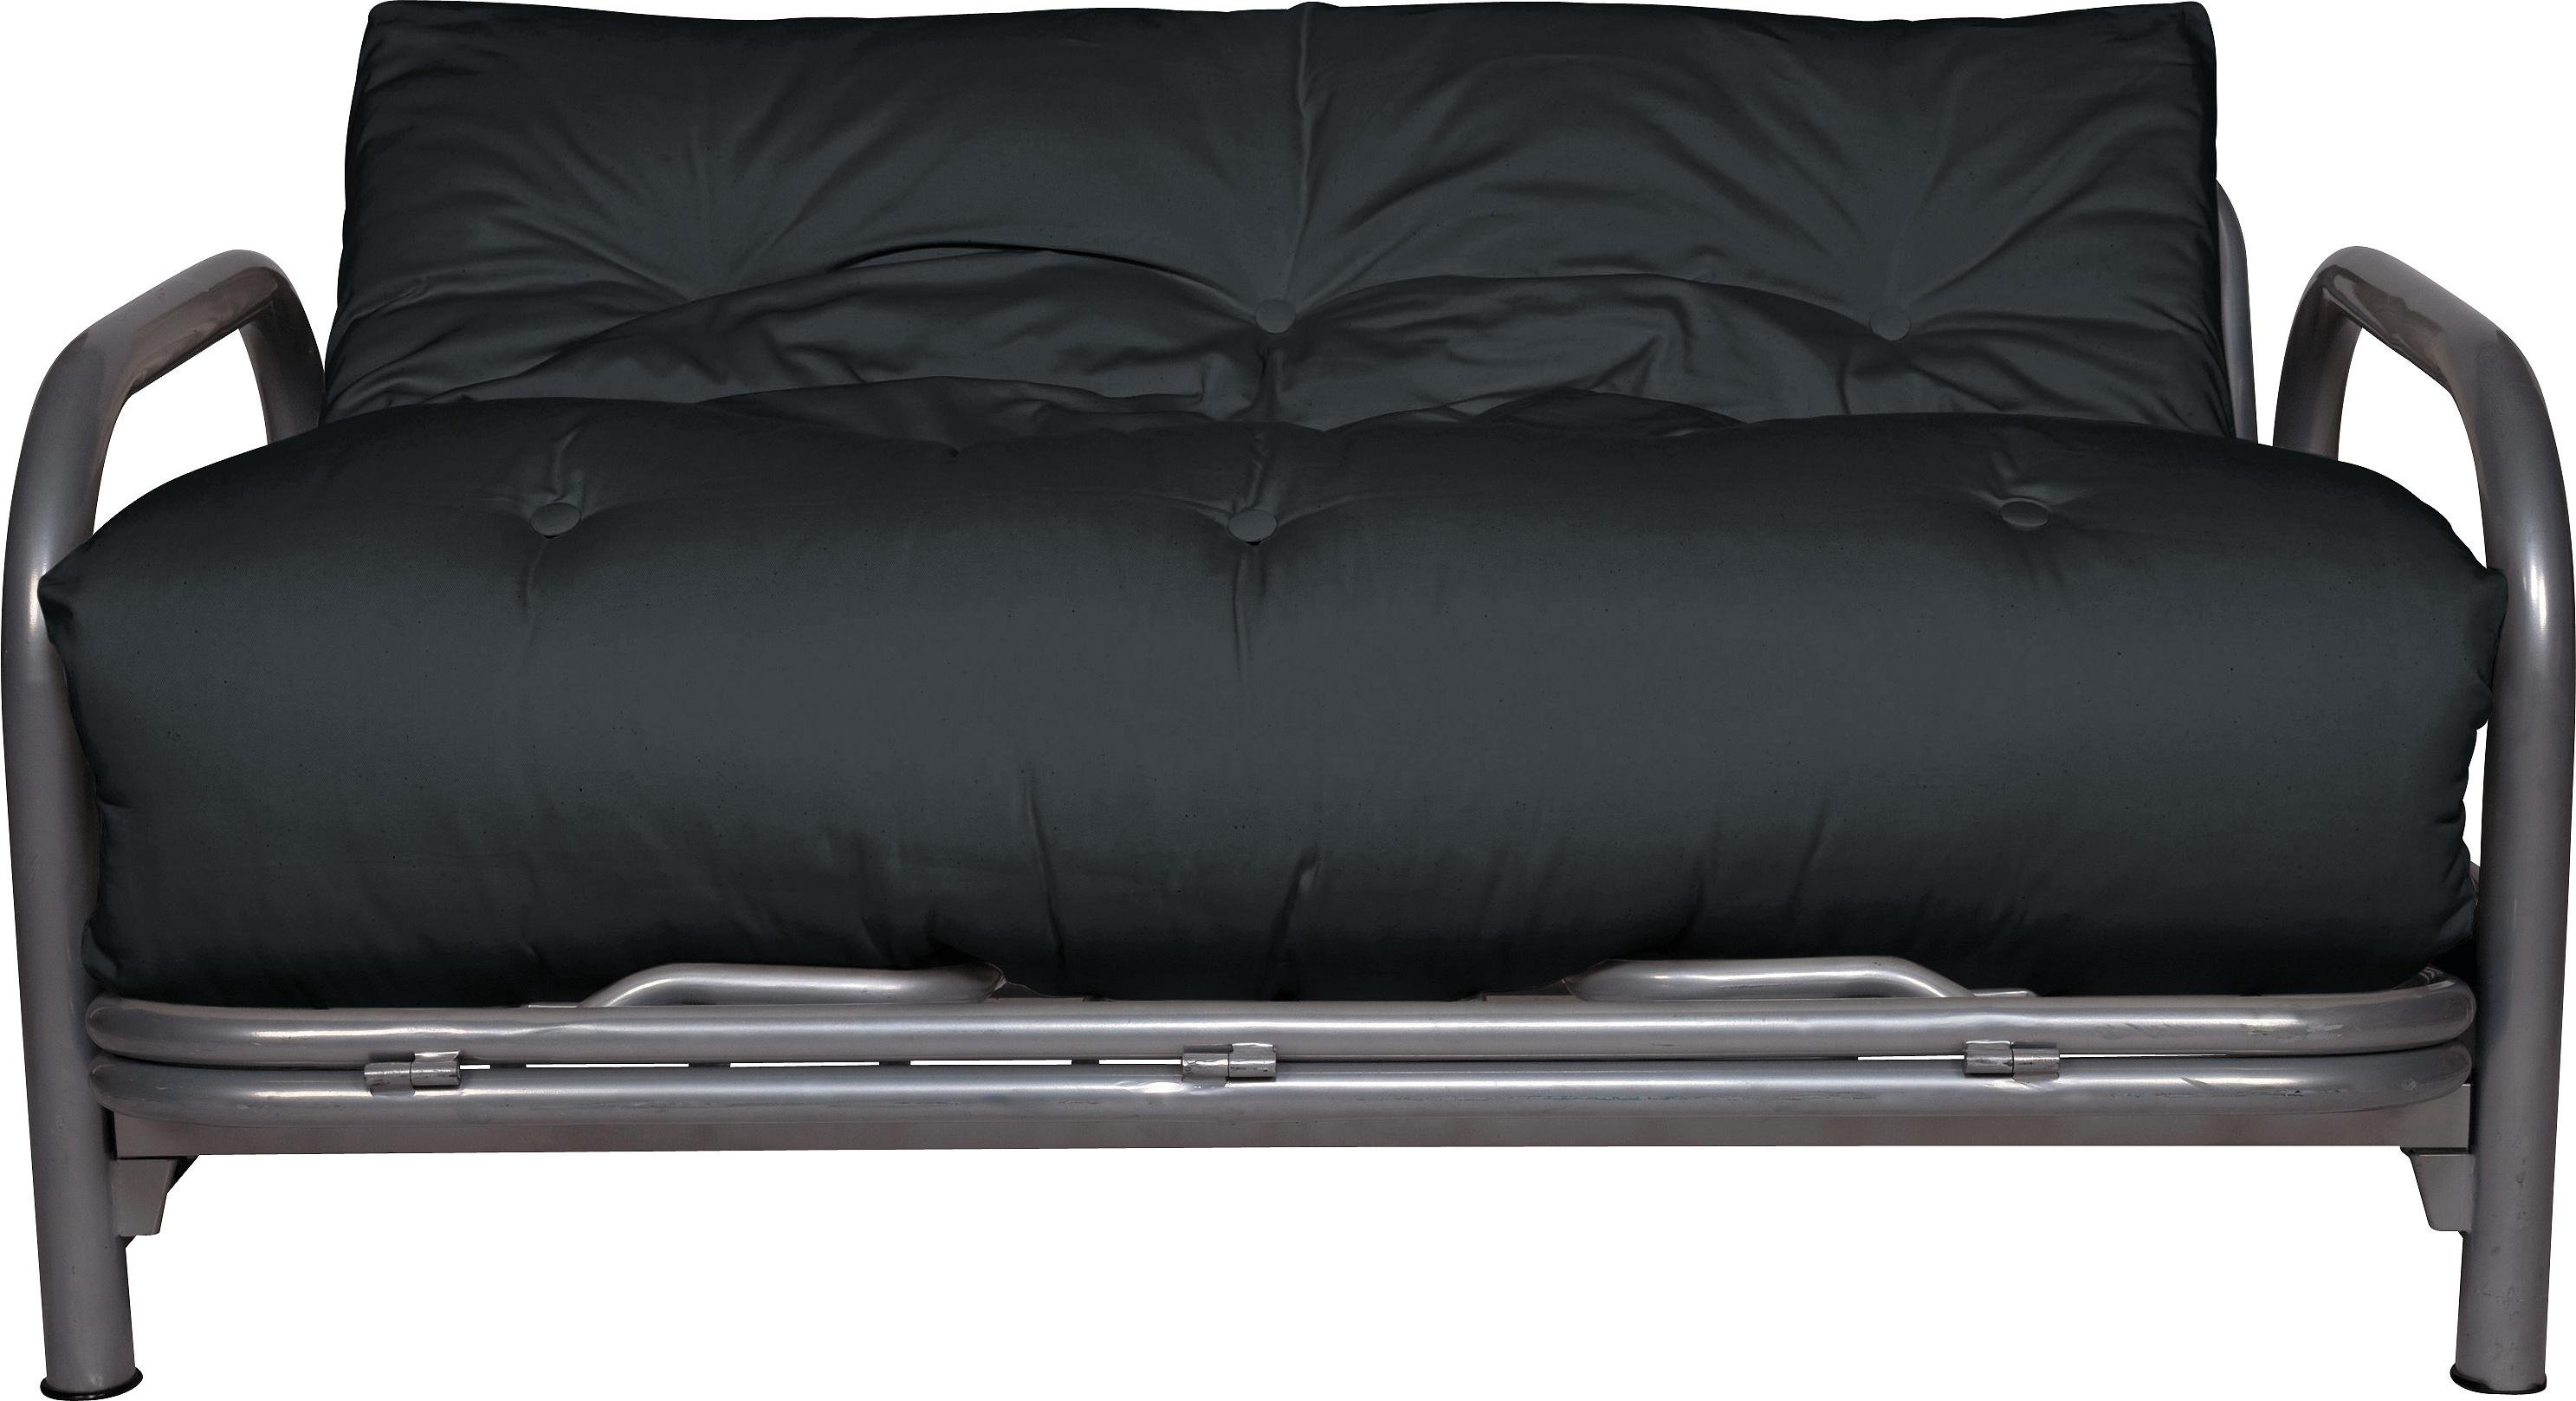 Buy Argos Home Mexico 2 Seater Futon Sofa Bed - Black | Sofa beds